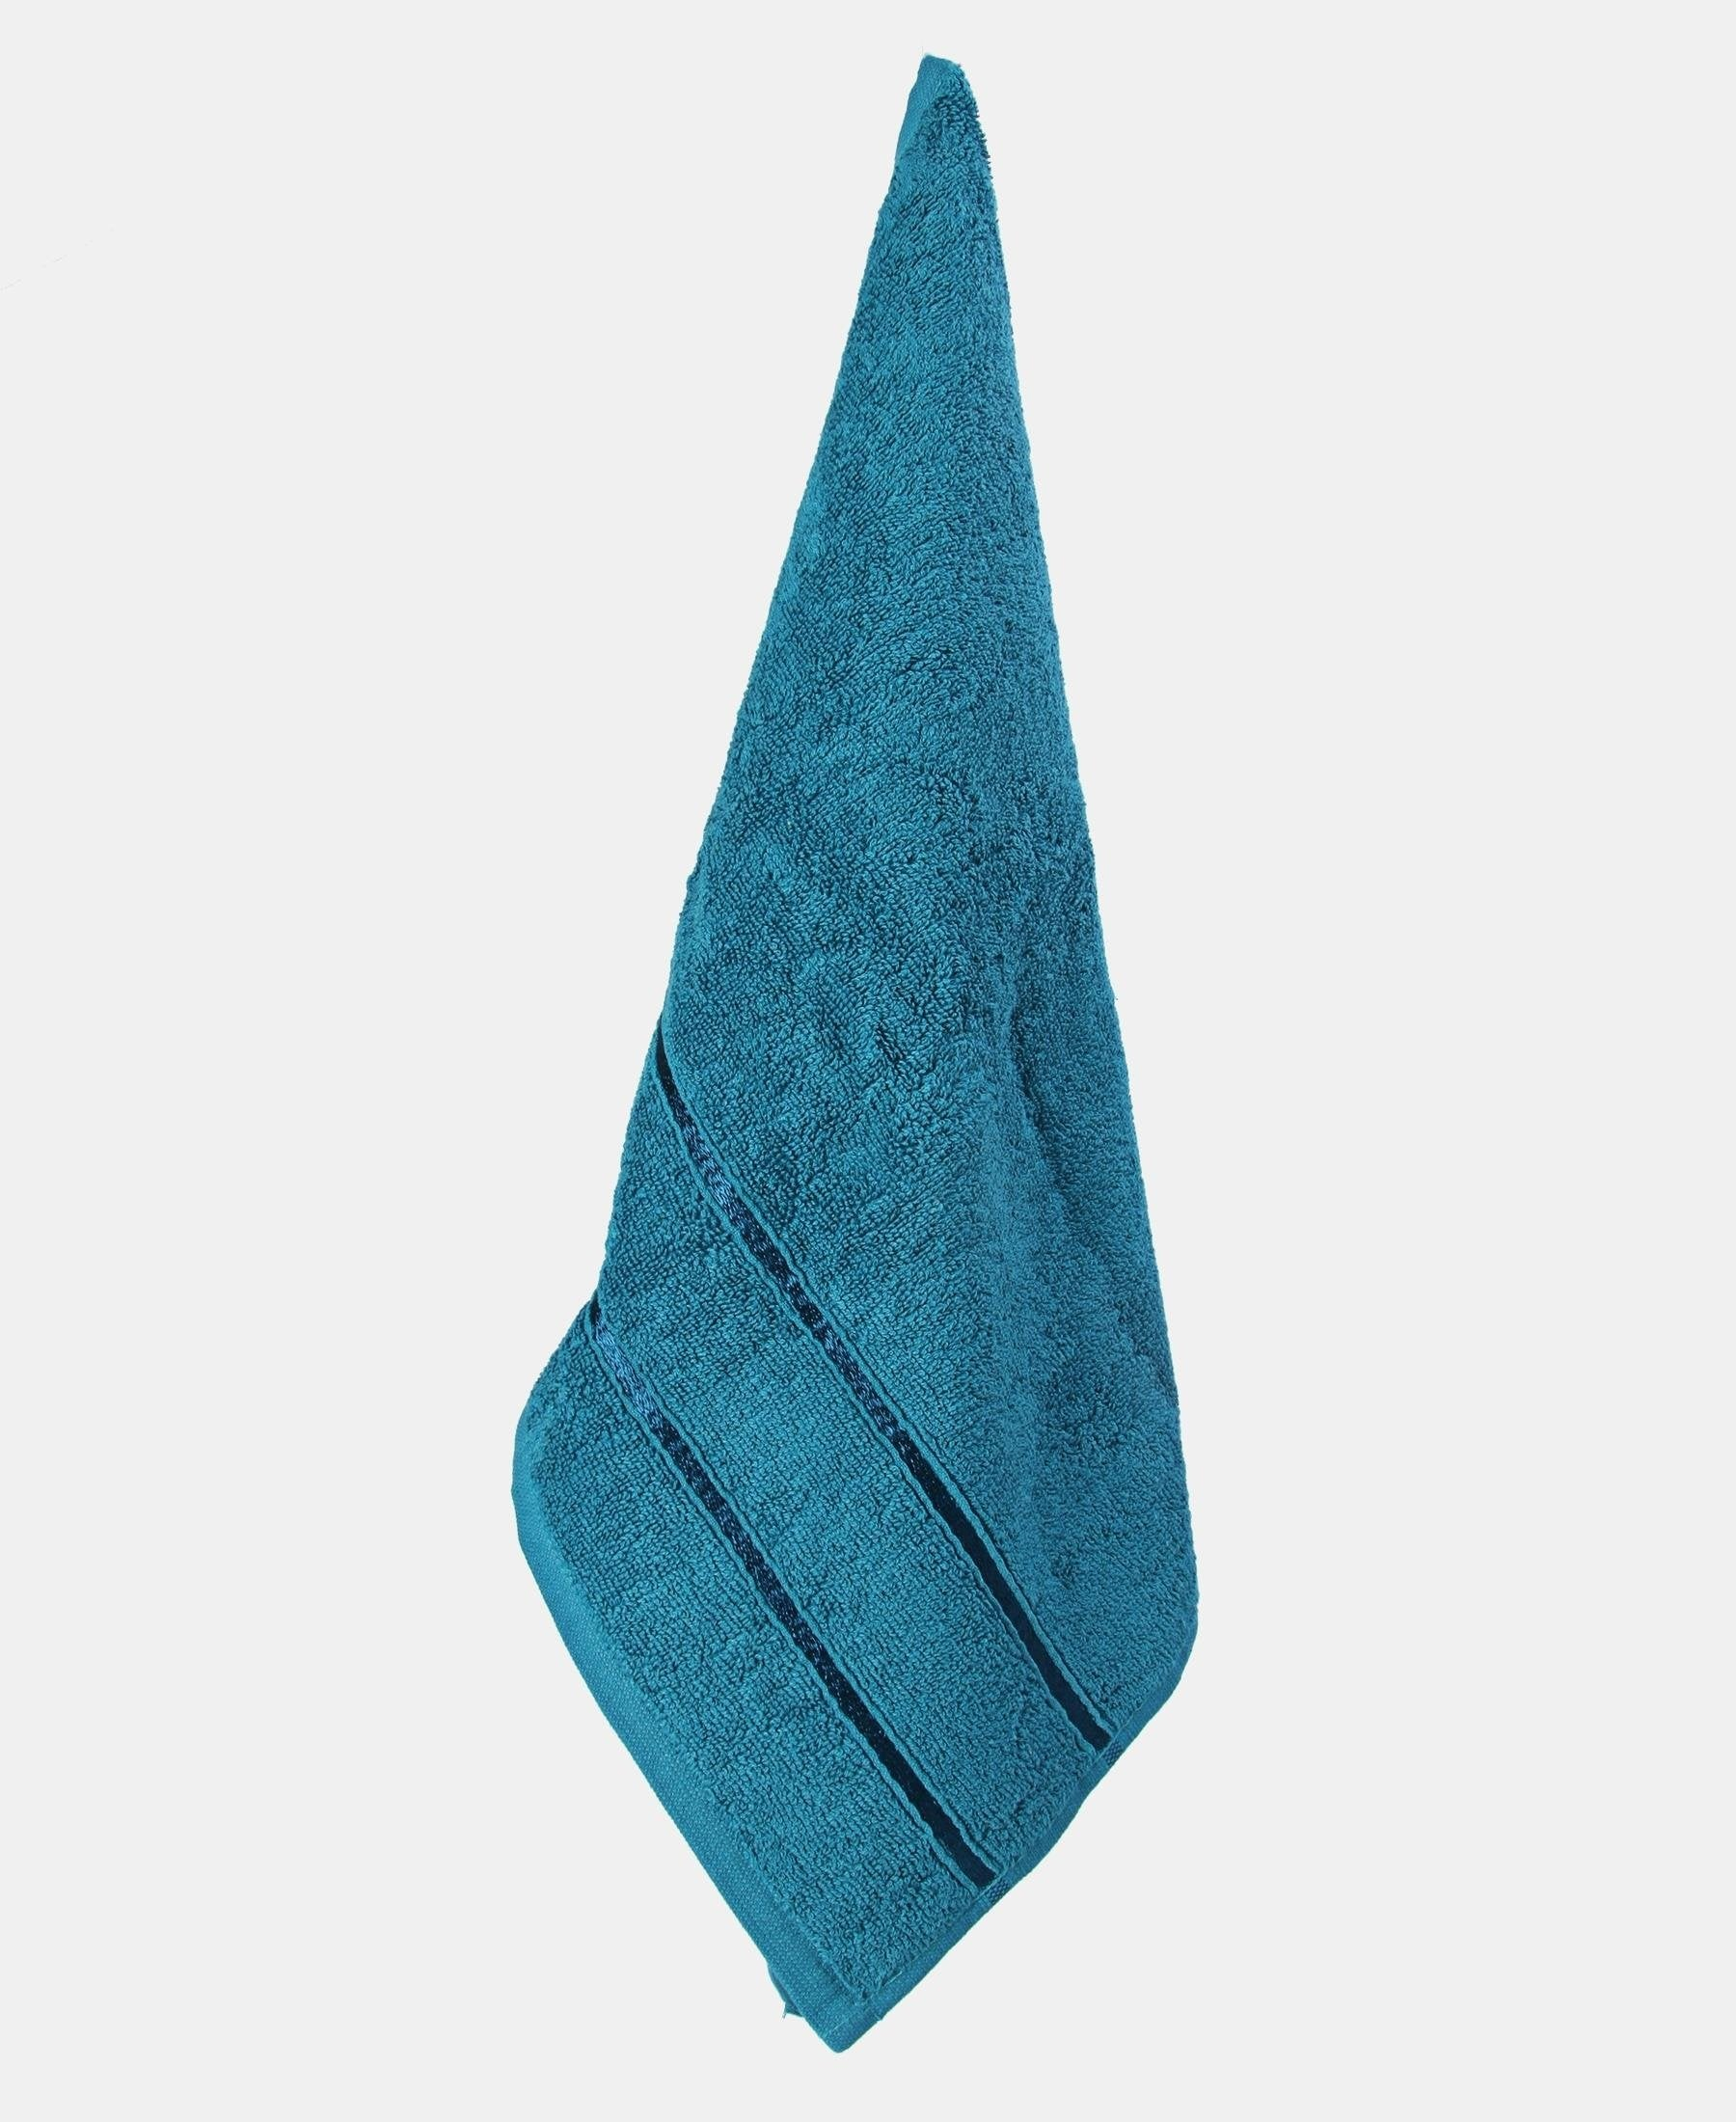 73x46cm Luxury Hand Towel - Teal